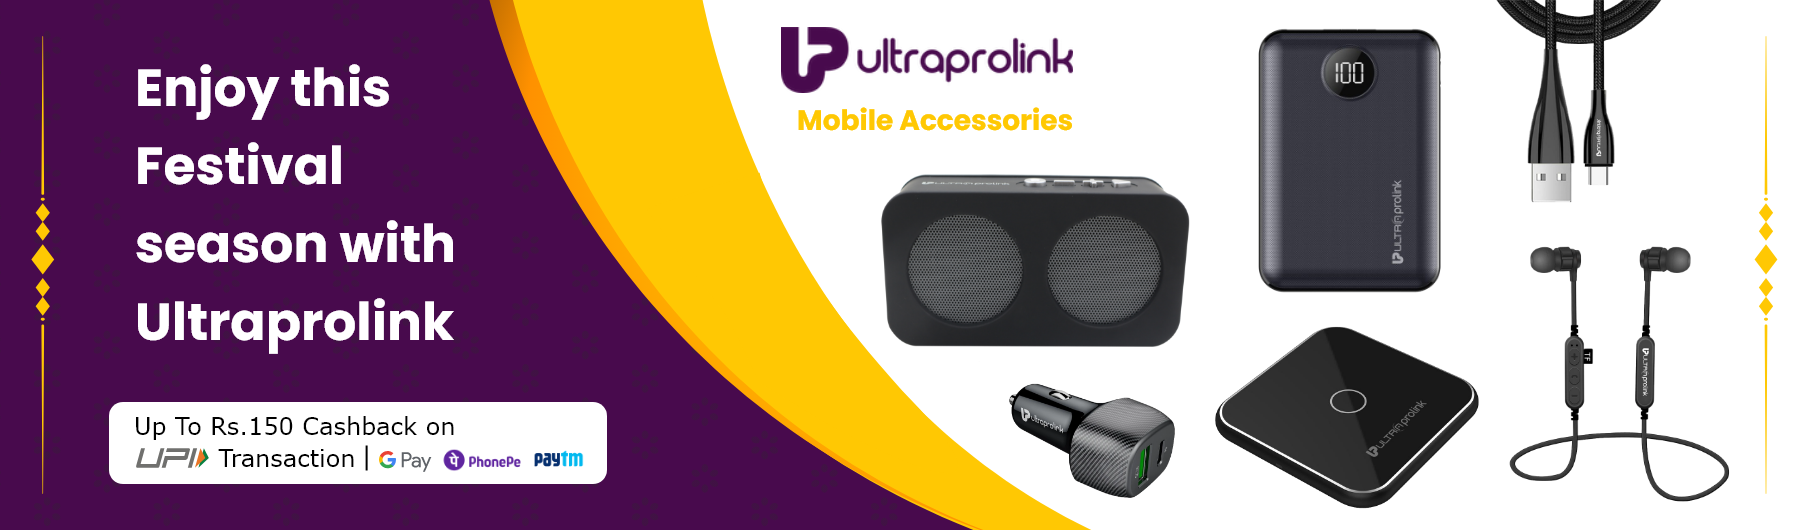 Ultraprolink Mobile accessories